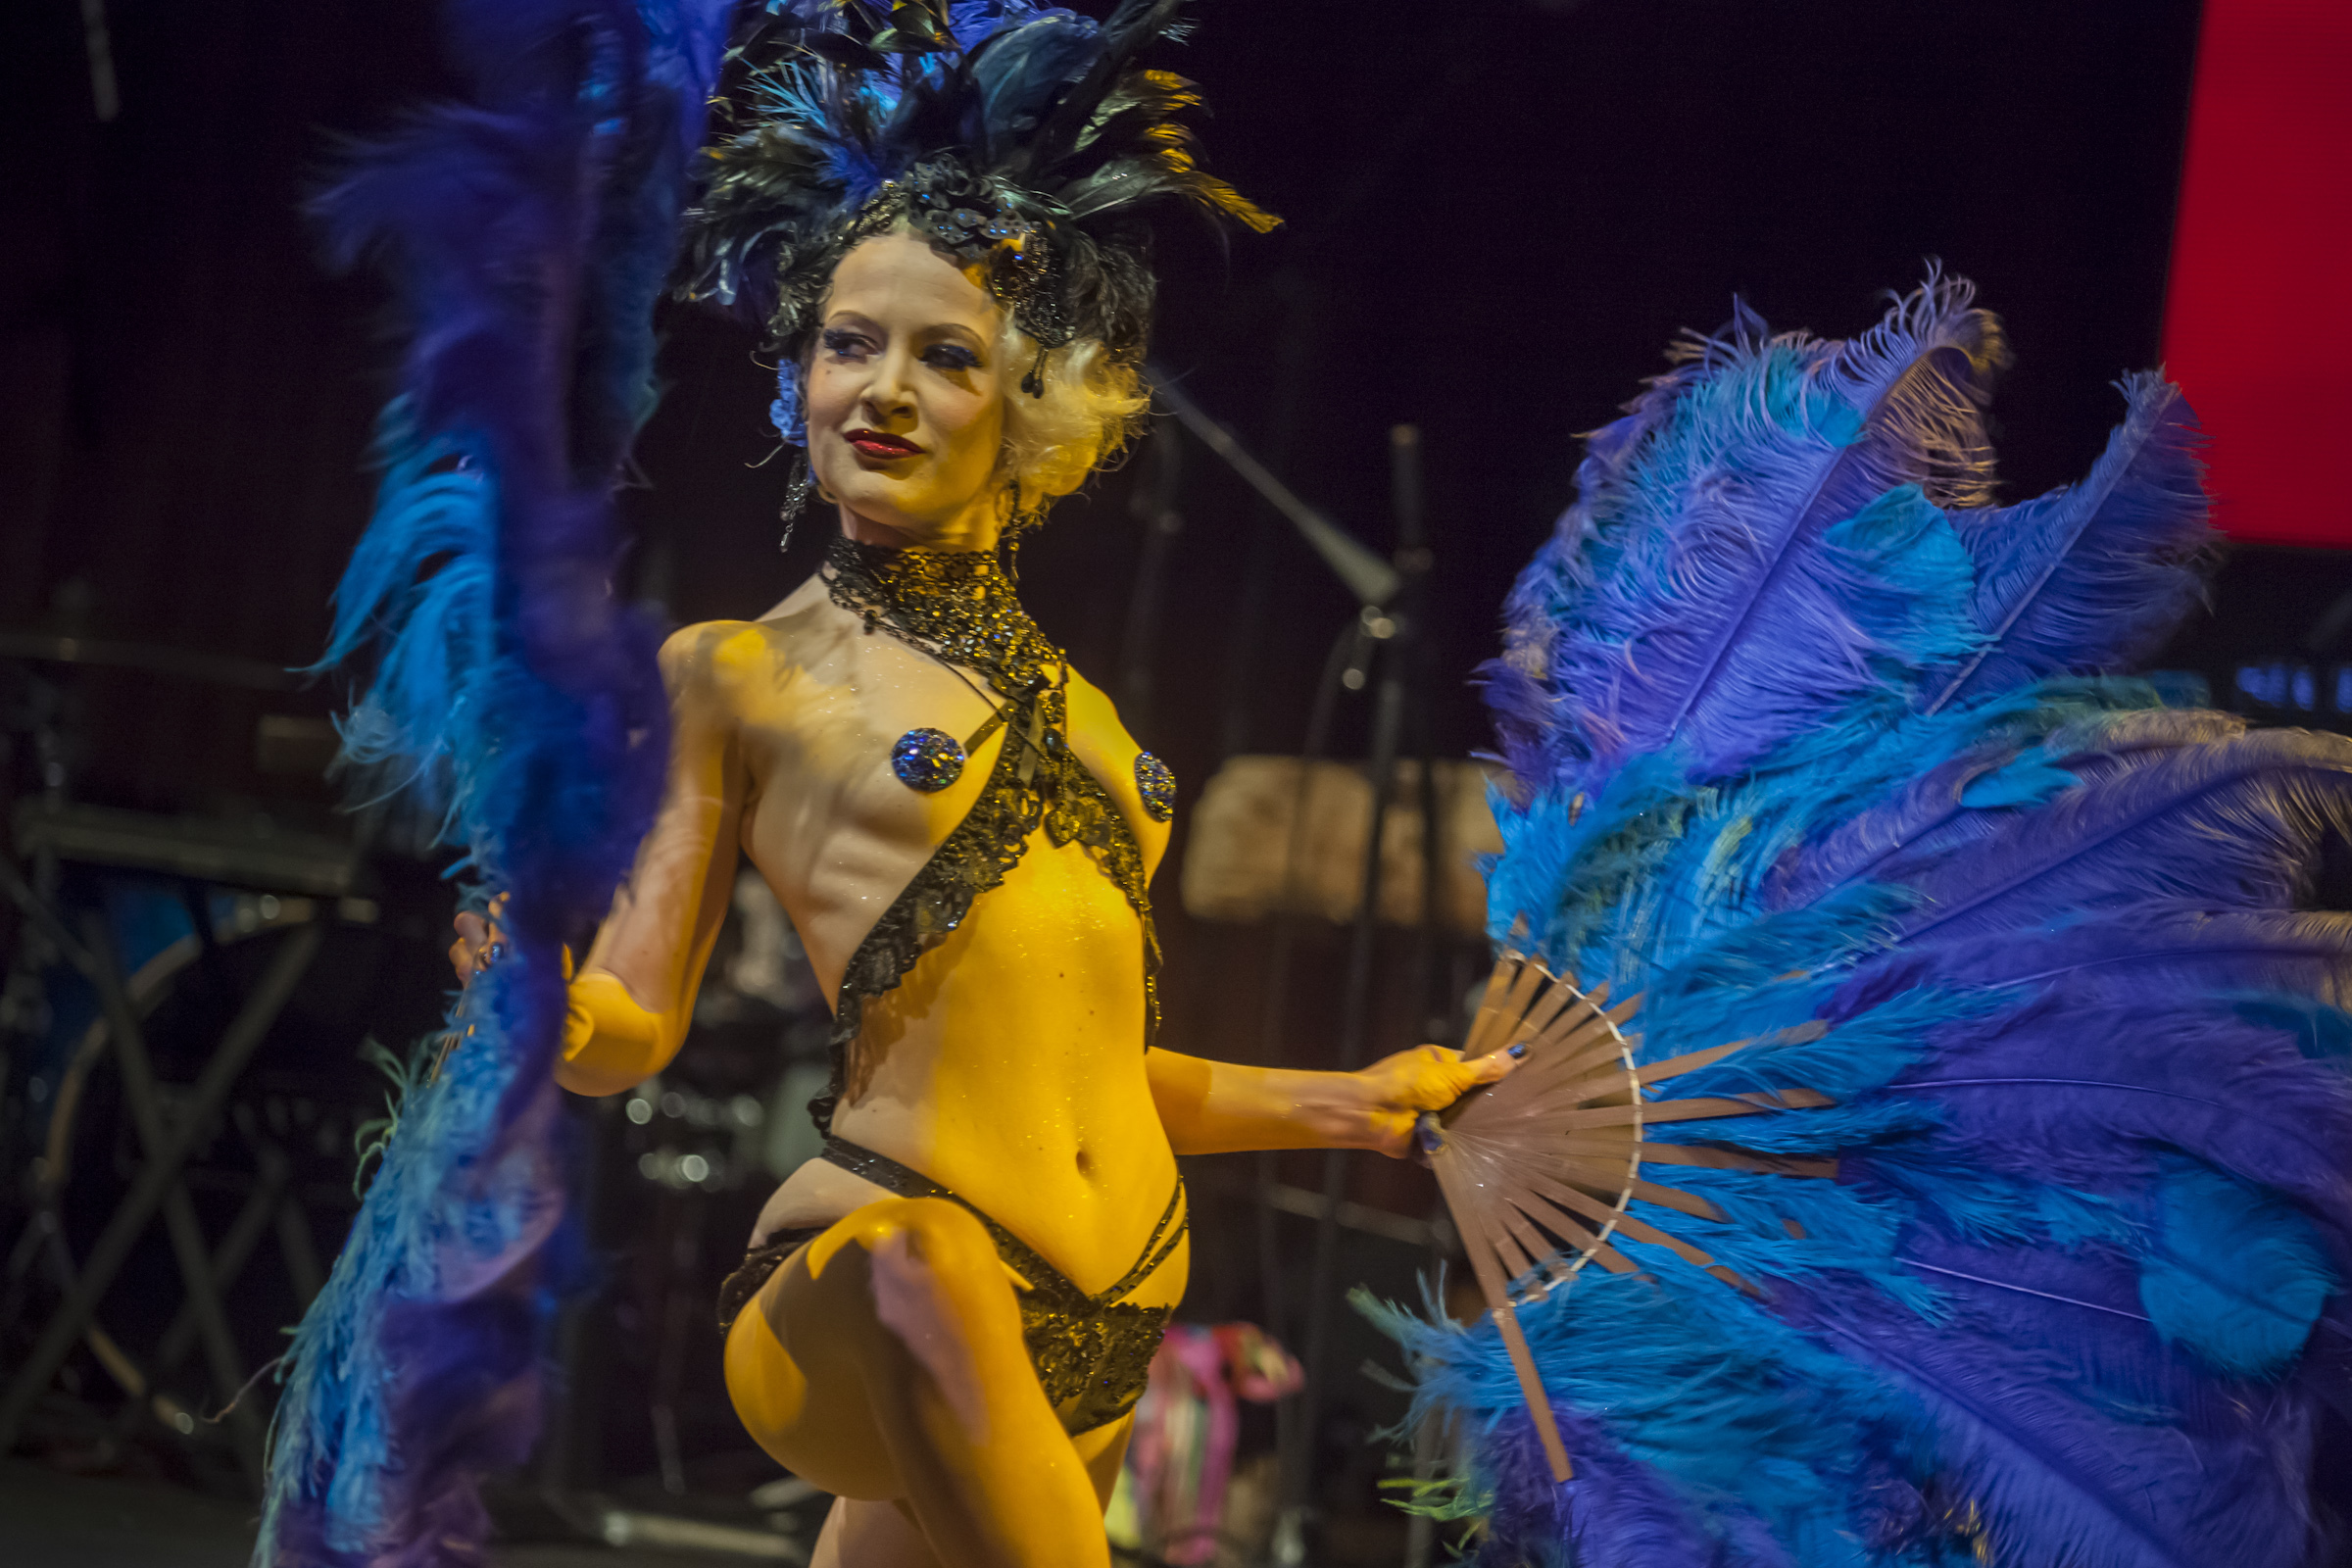 Photos: New York Burlesque Festival's Golden Pastie Awards